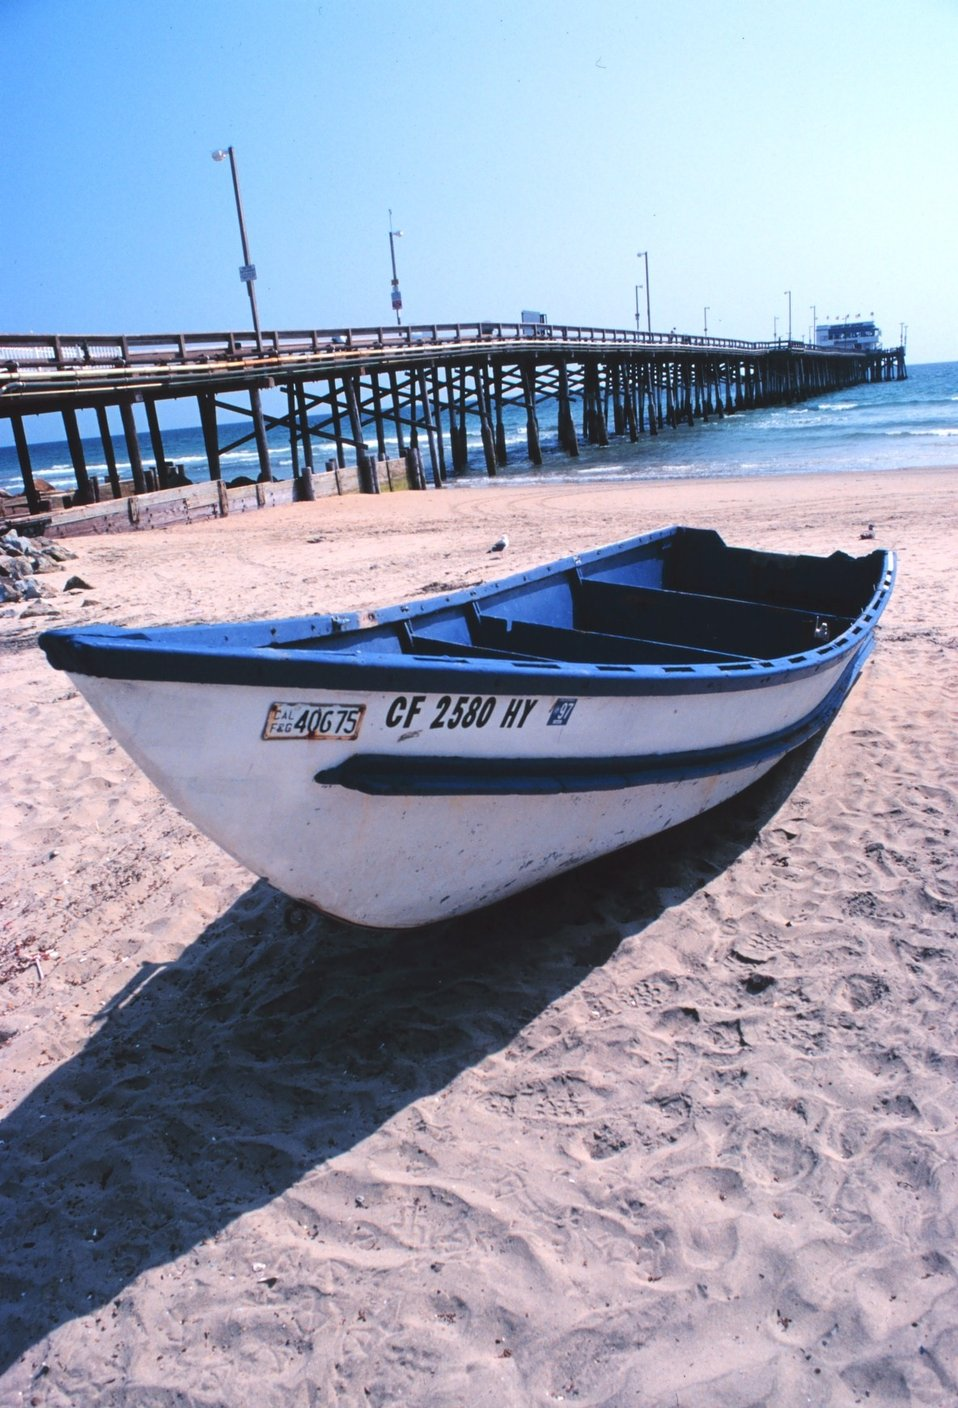 A part of the Newport Beach dory fishing fleet on Newport Beach